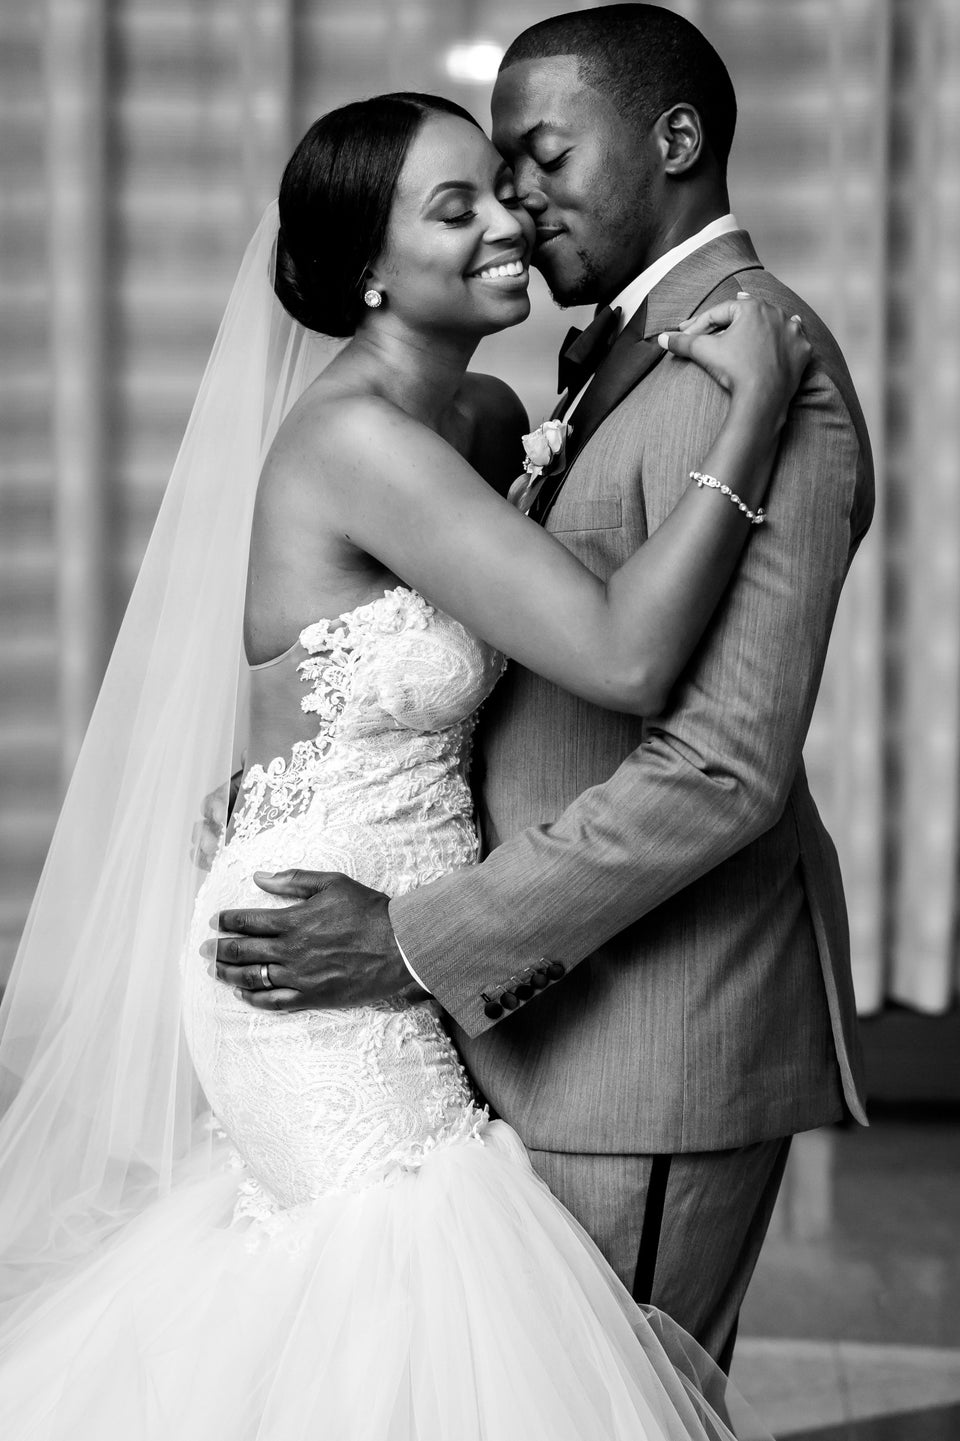 Bridal Bliss: Elo and Lauren's Glam Wedding Will Stop You In Your Tracks